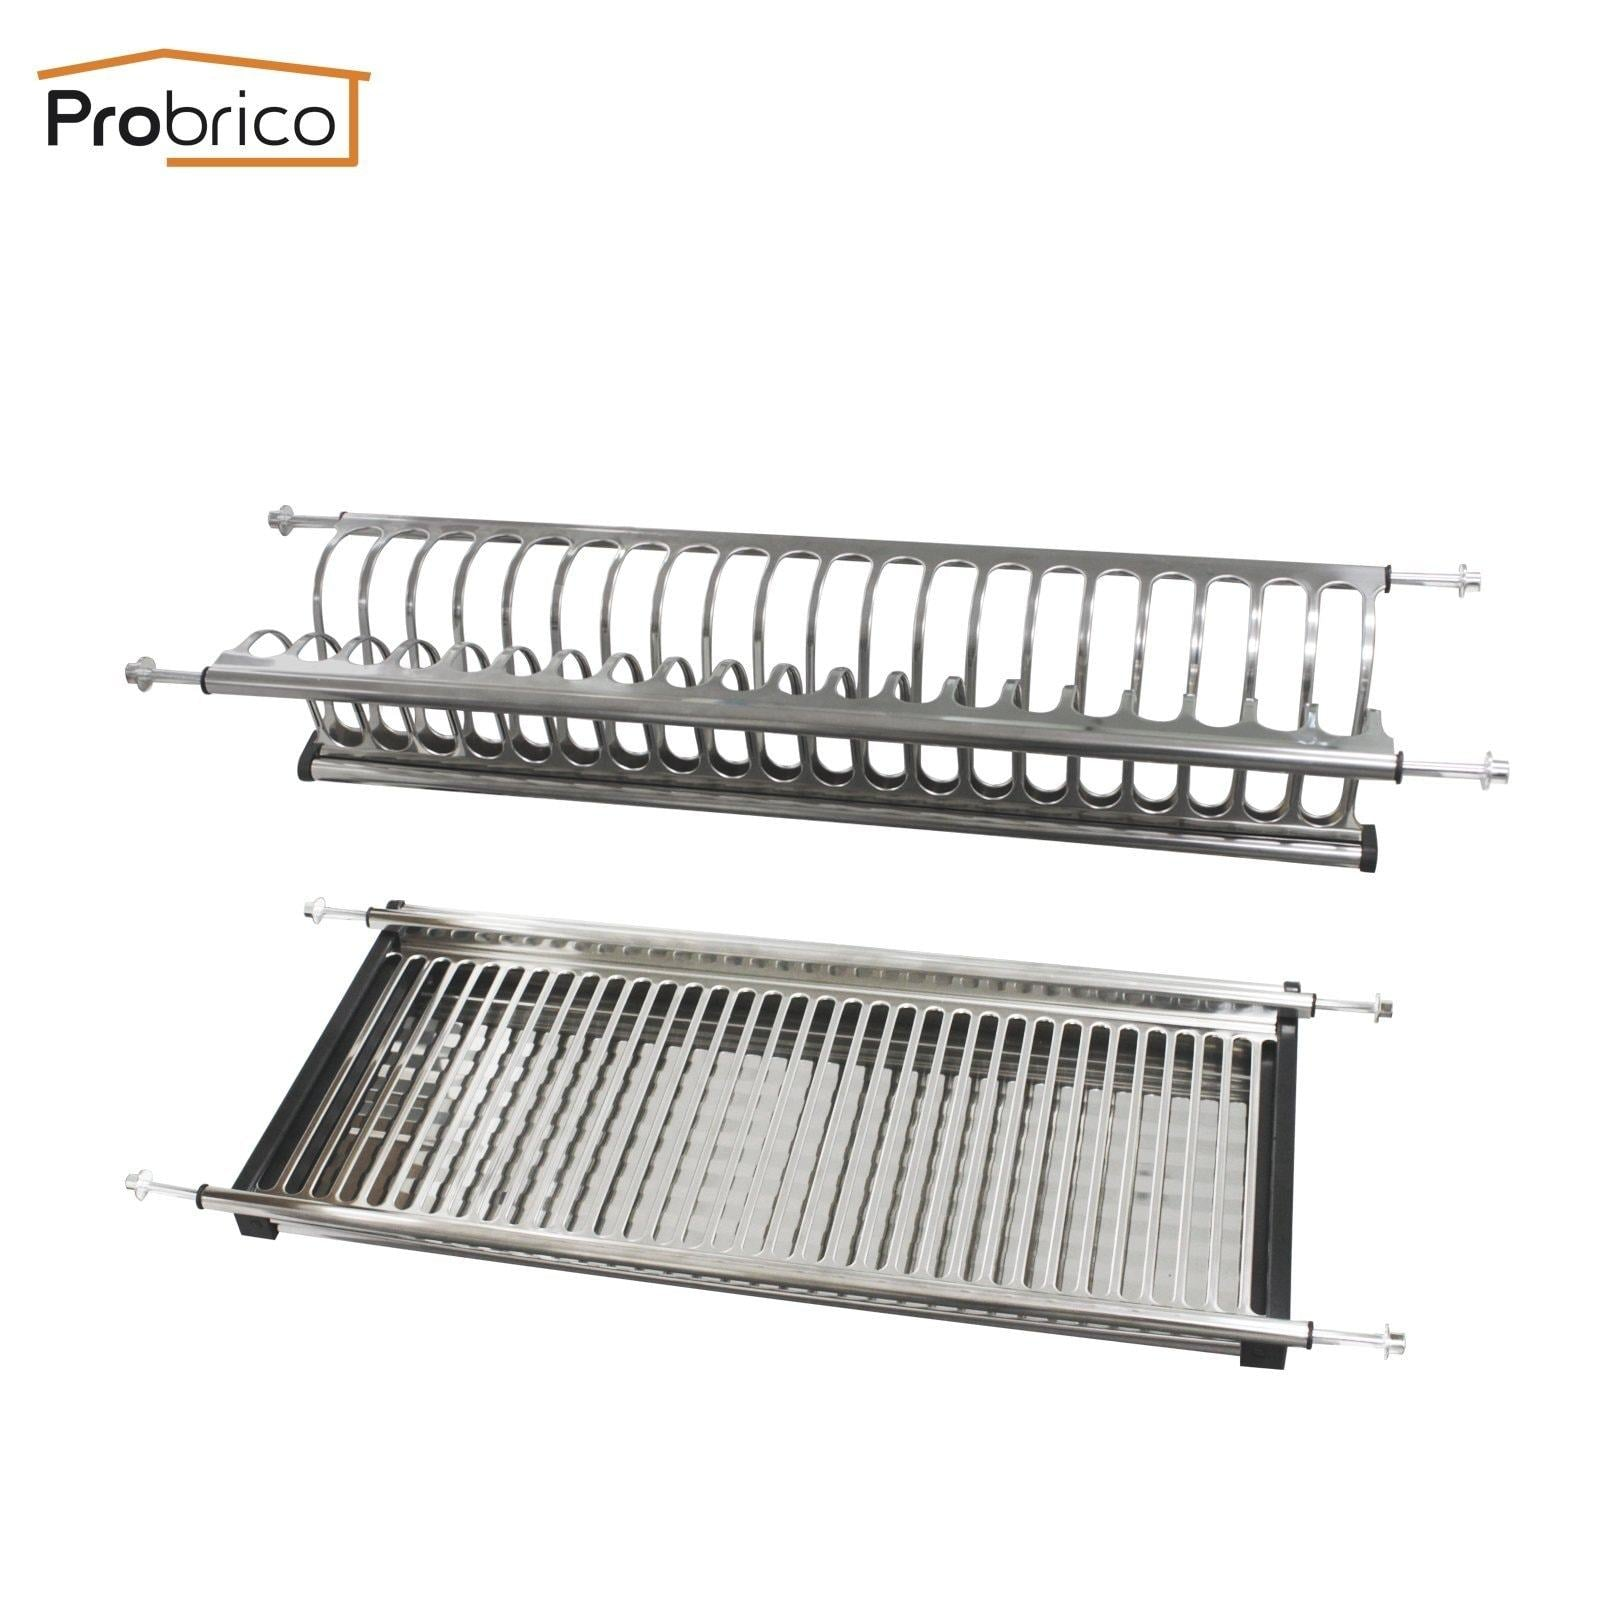 Latest probrico stainless steel dish drying rack for the cabinet 900mm